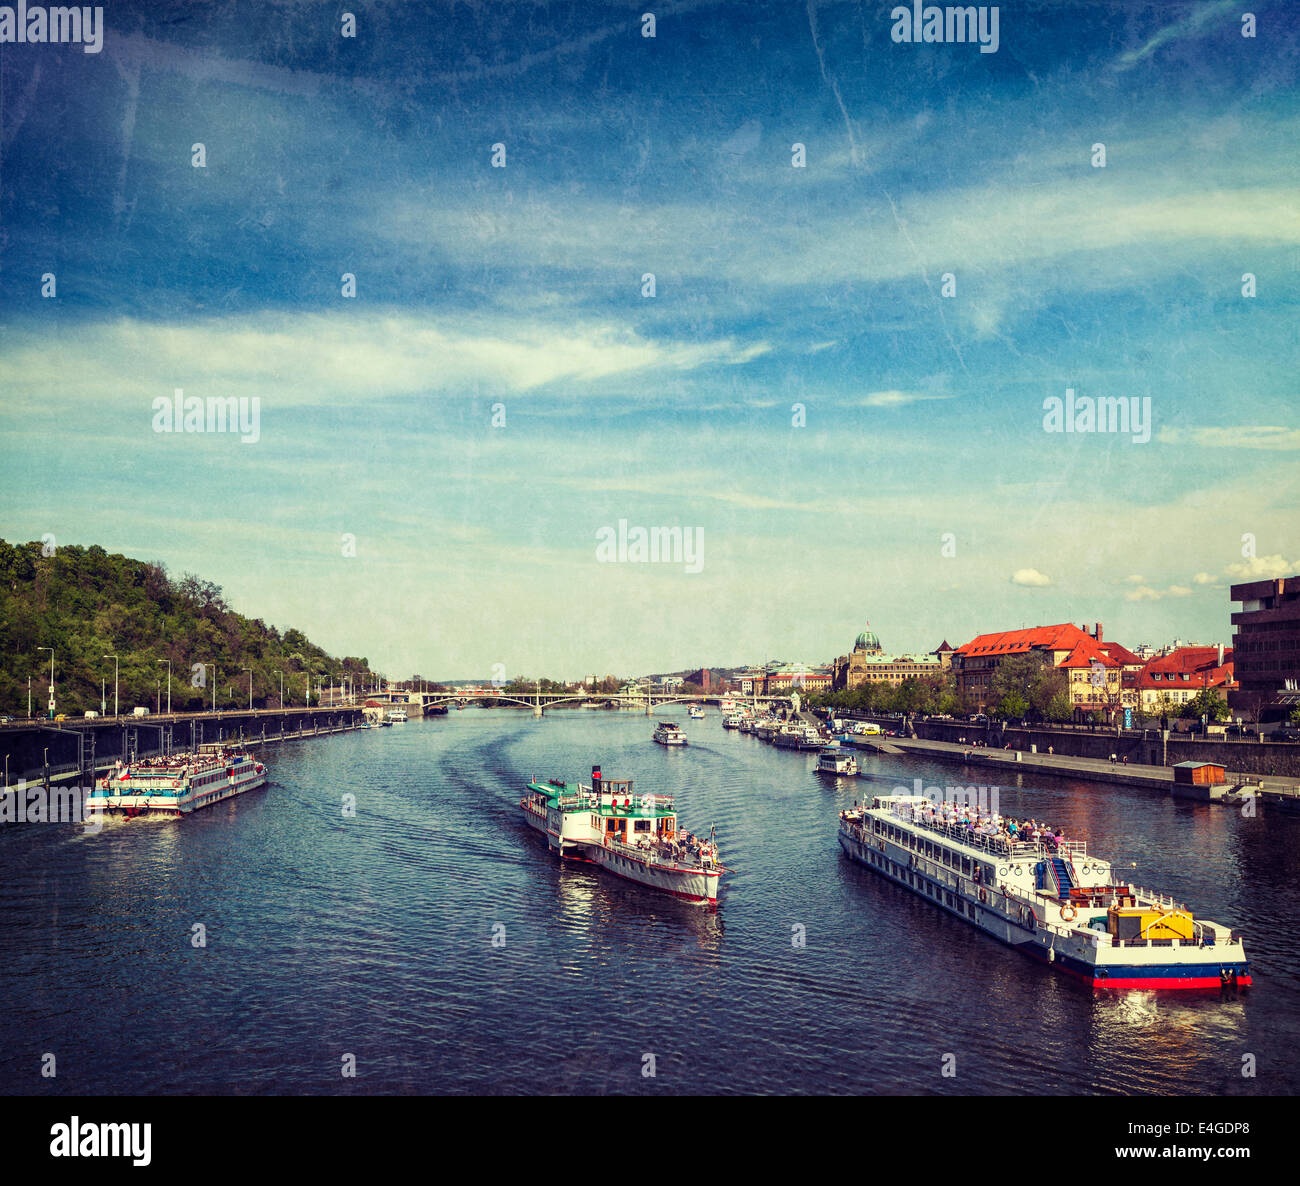 Vintage retro hipster style travel image of turist boats on Vltava river in Prague, Czech Republic with grunge texture - Stock Image